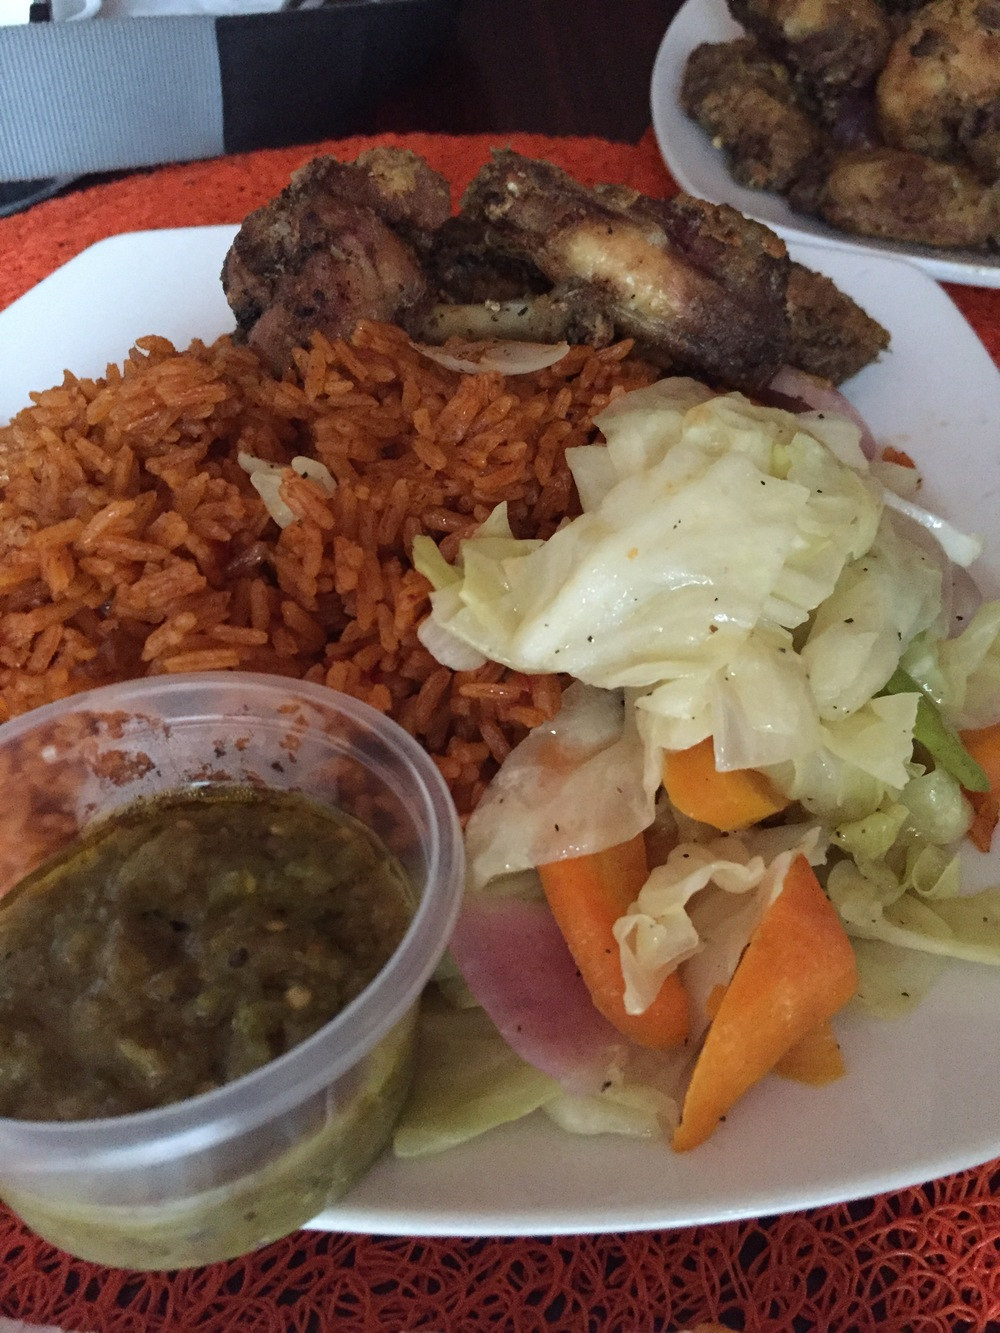 Up close with the jollof, Mukasechic